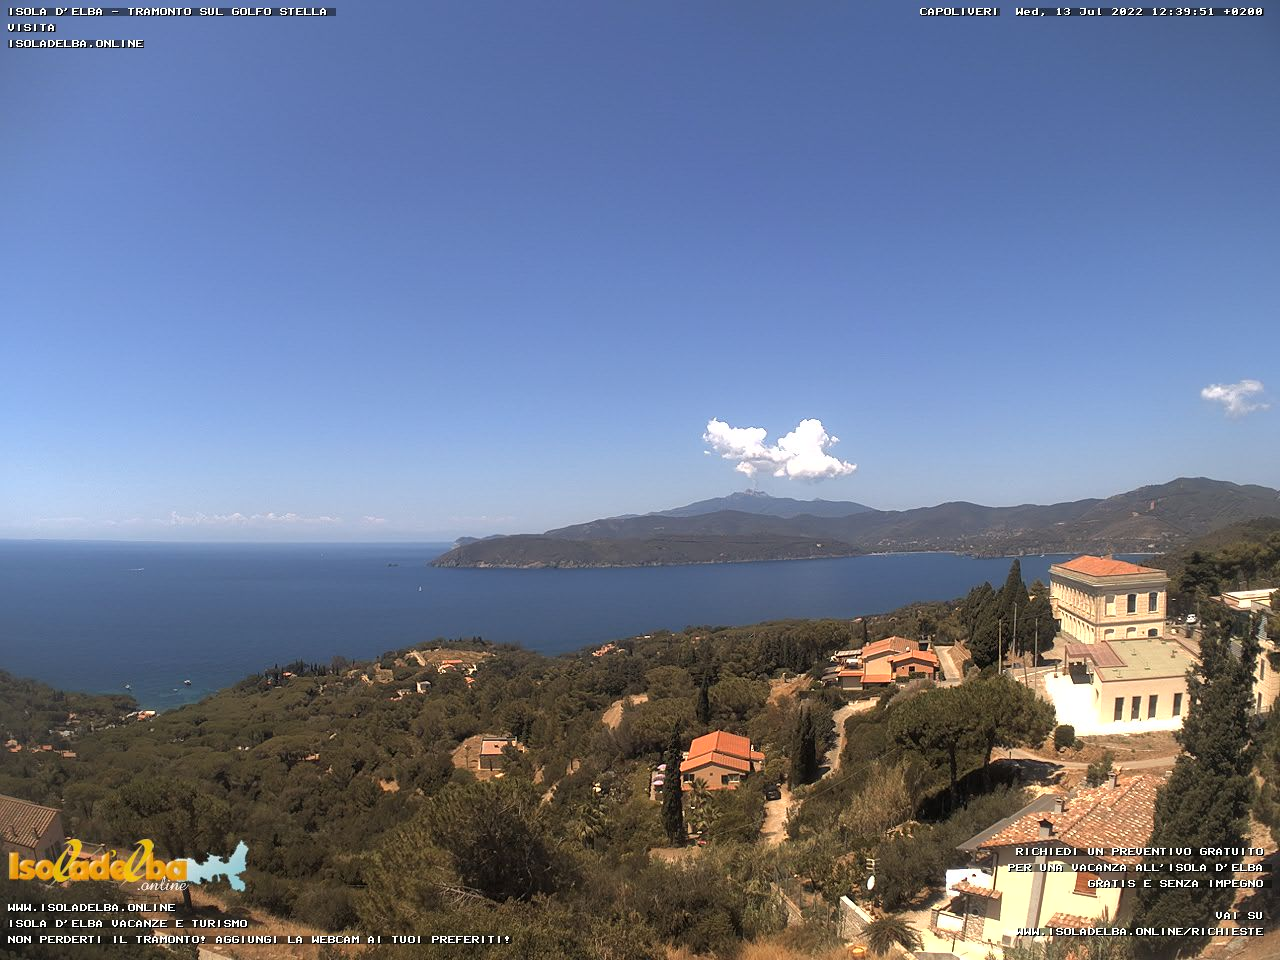 Webcam over Golfo Stella